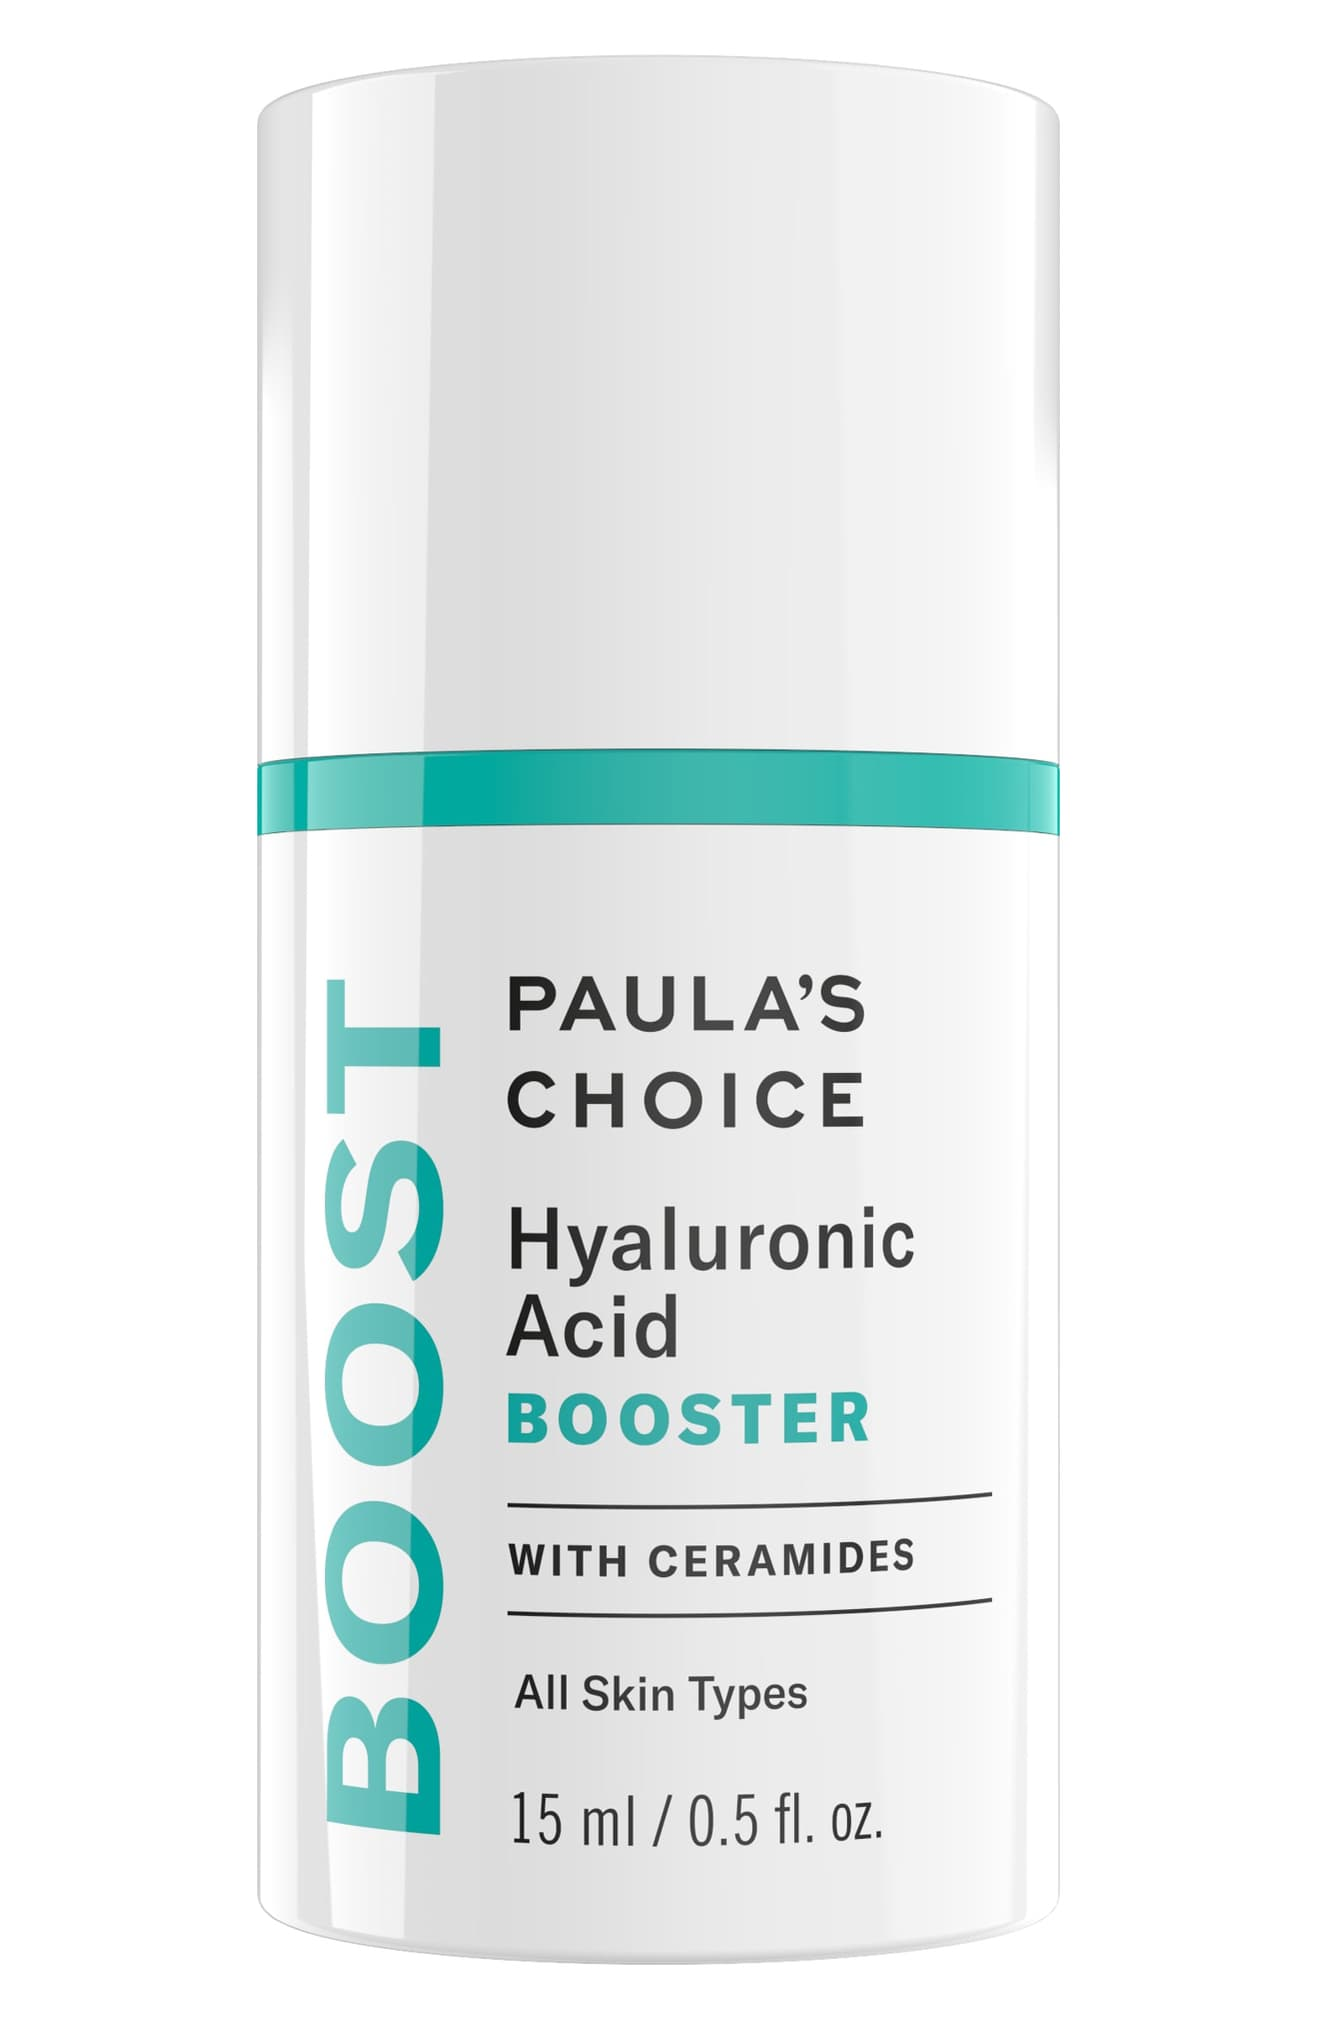 PAULA'S CHOICE Resist Hyaluronic Acid Booster Concentrated Serum